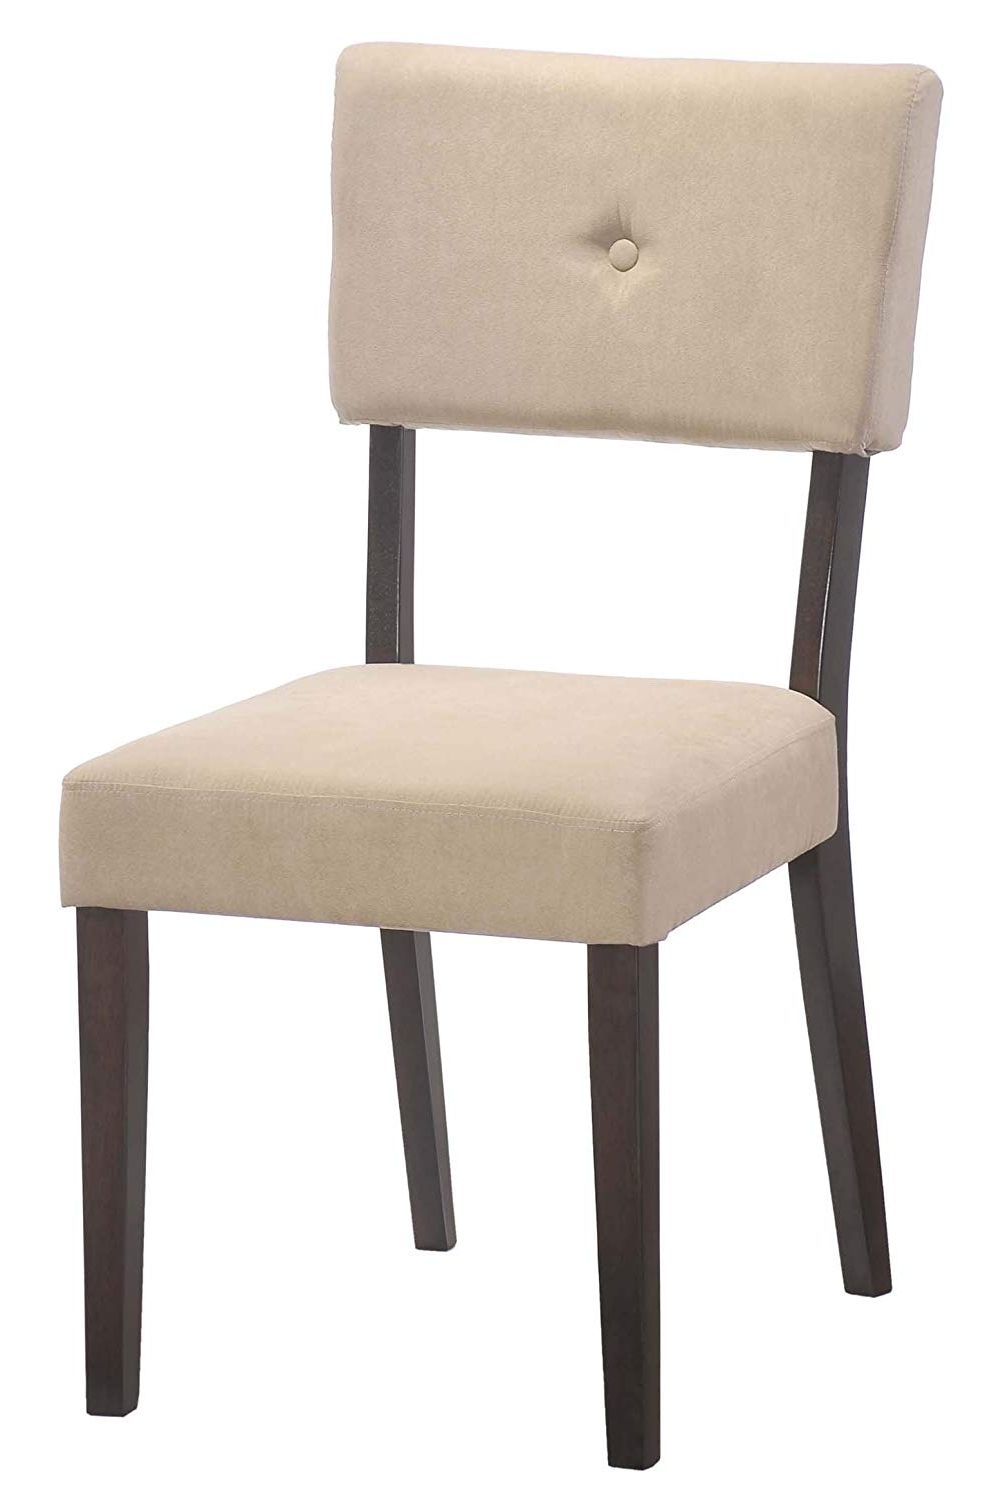 Jaxon Grey Upholstered Side Chairs Throughout Current Amazon: Contemporary Side Chair – Set Of 2 720088: Kitchen & Dining (Gallery 11 of 20)